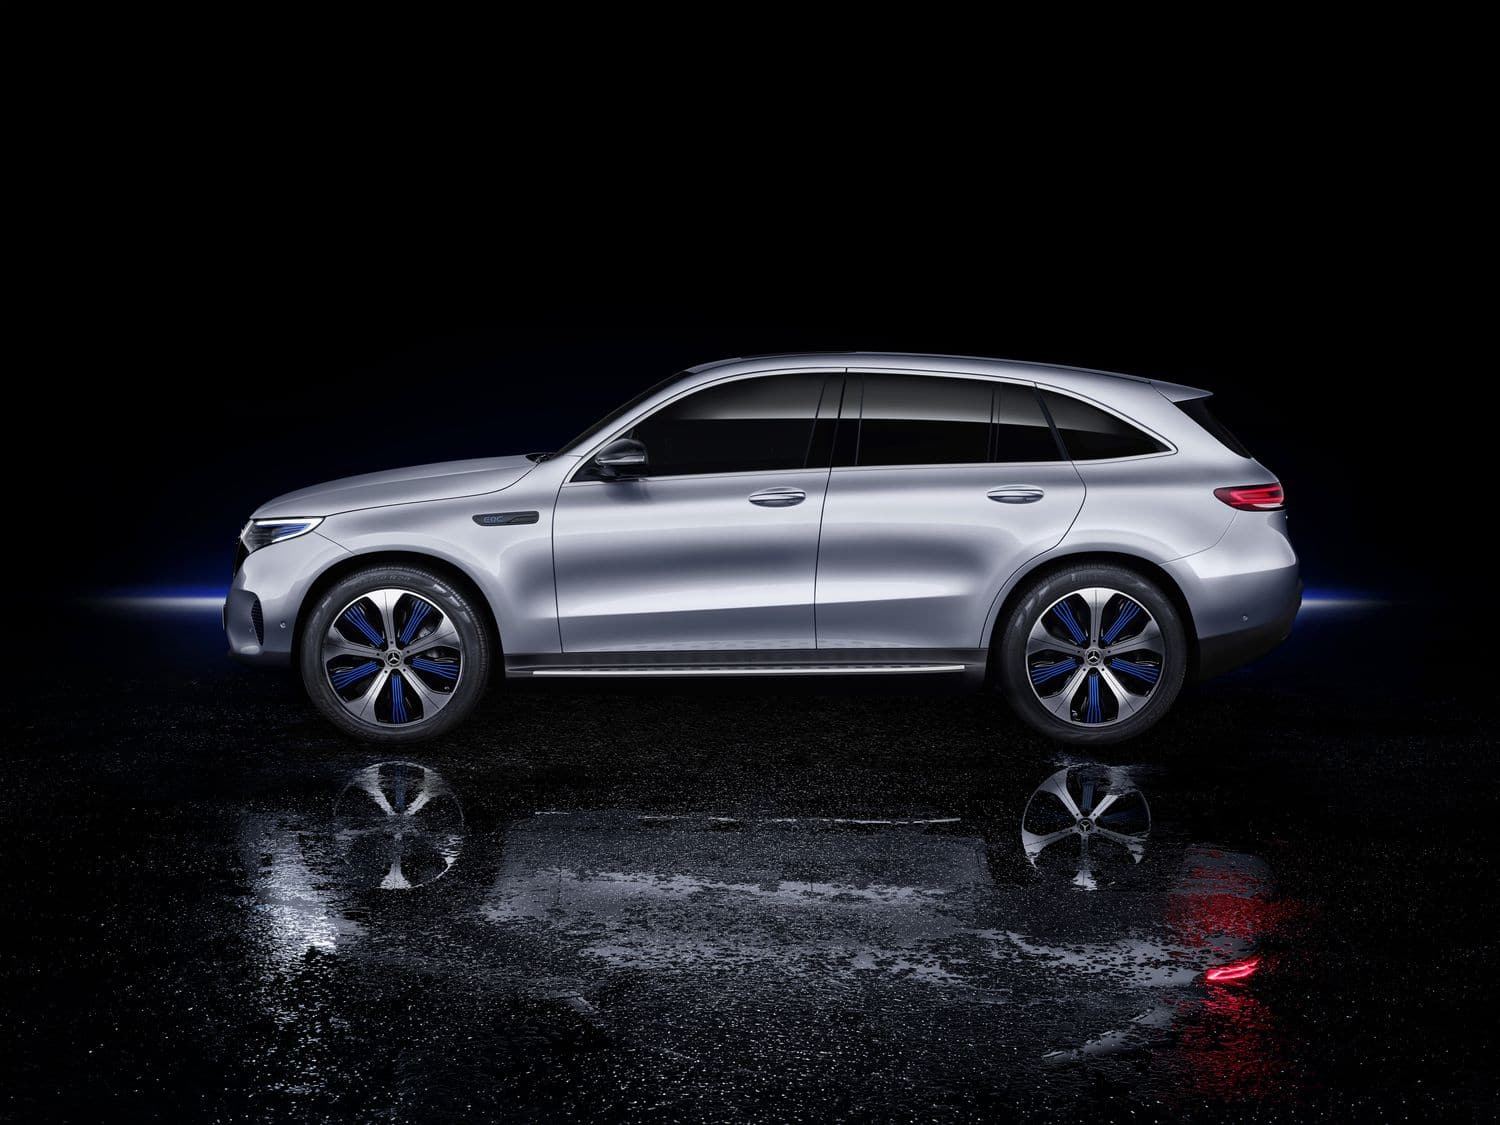 Der neue Mercedes-Benz EQC - der erste Mercedes-Benz der Produkt- und Technologiemarke EQThe new Mercedes-Benz EQC - the first Mercedes-Benz under the product and technology brand EQ